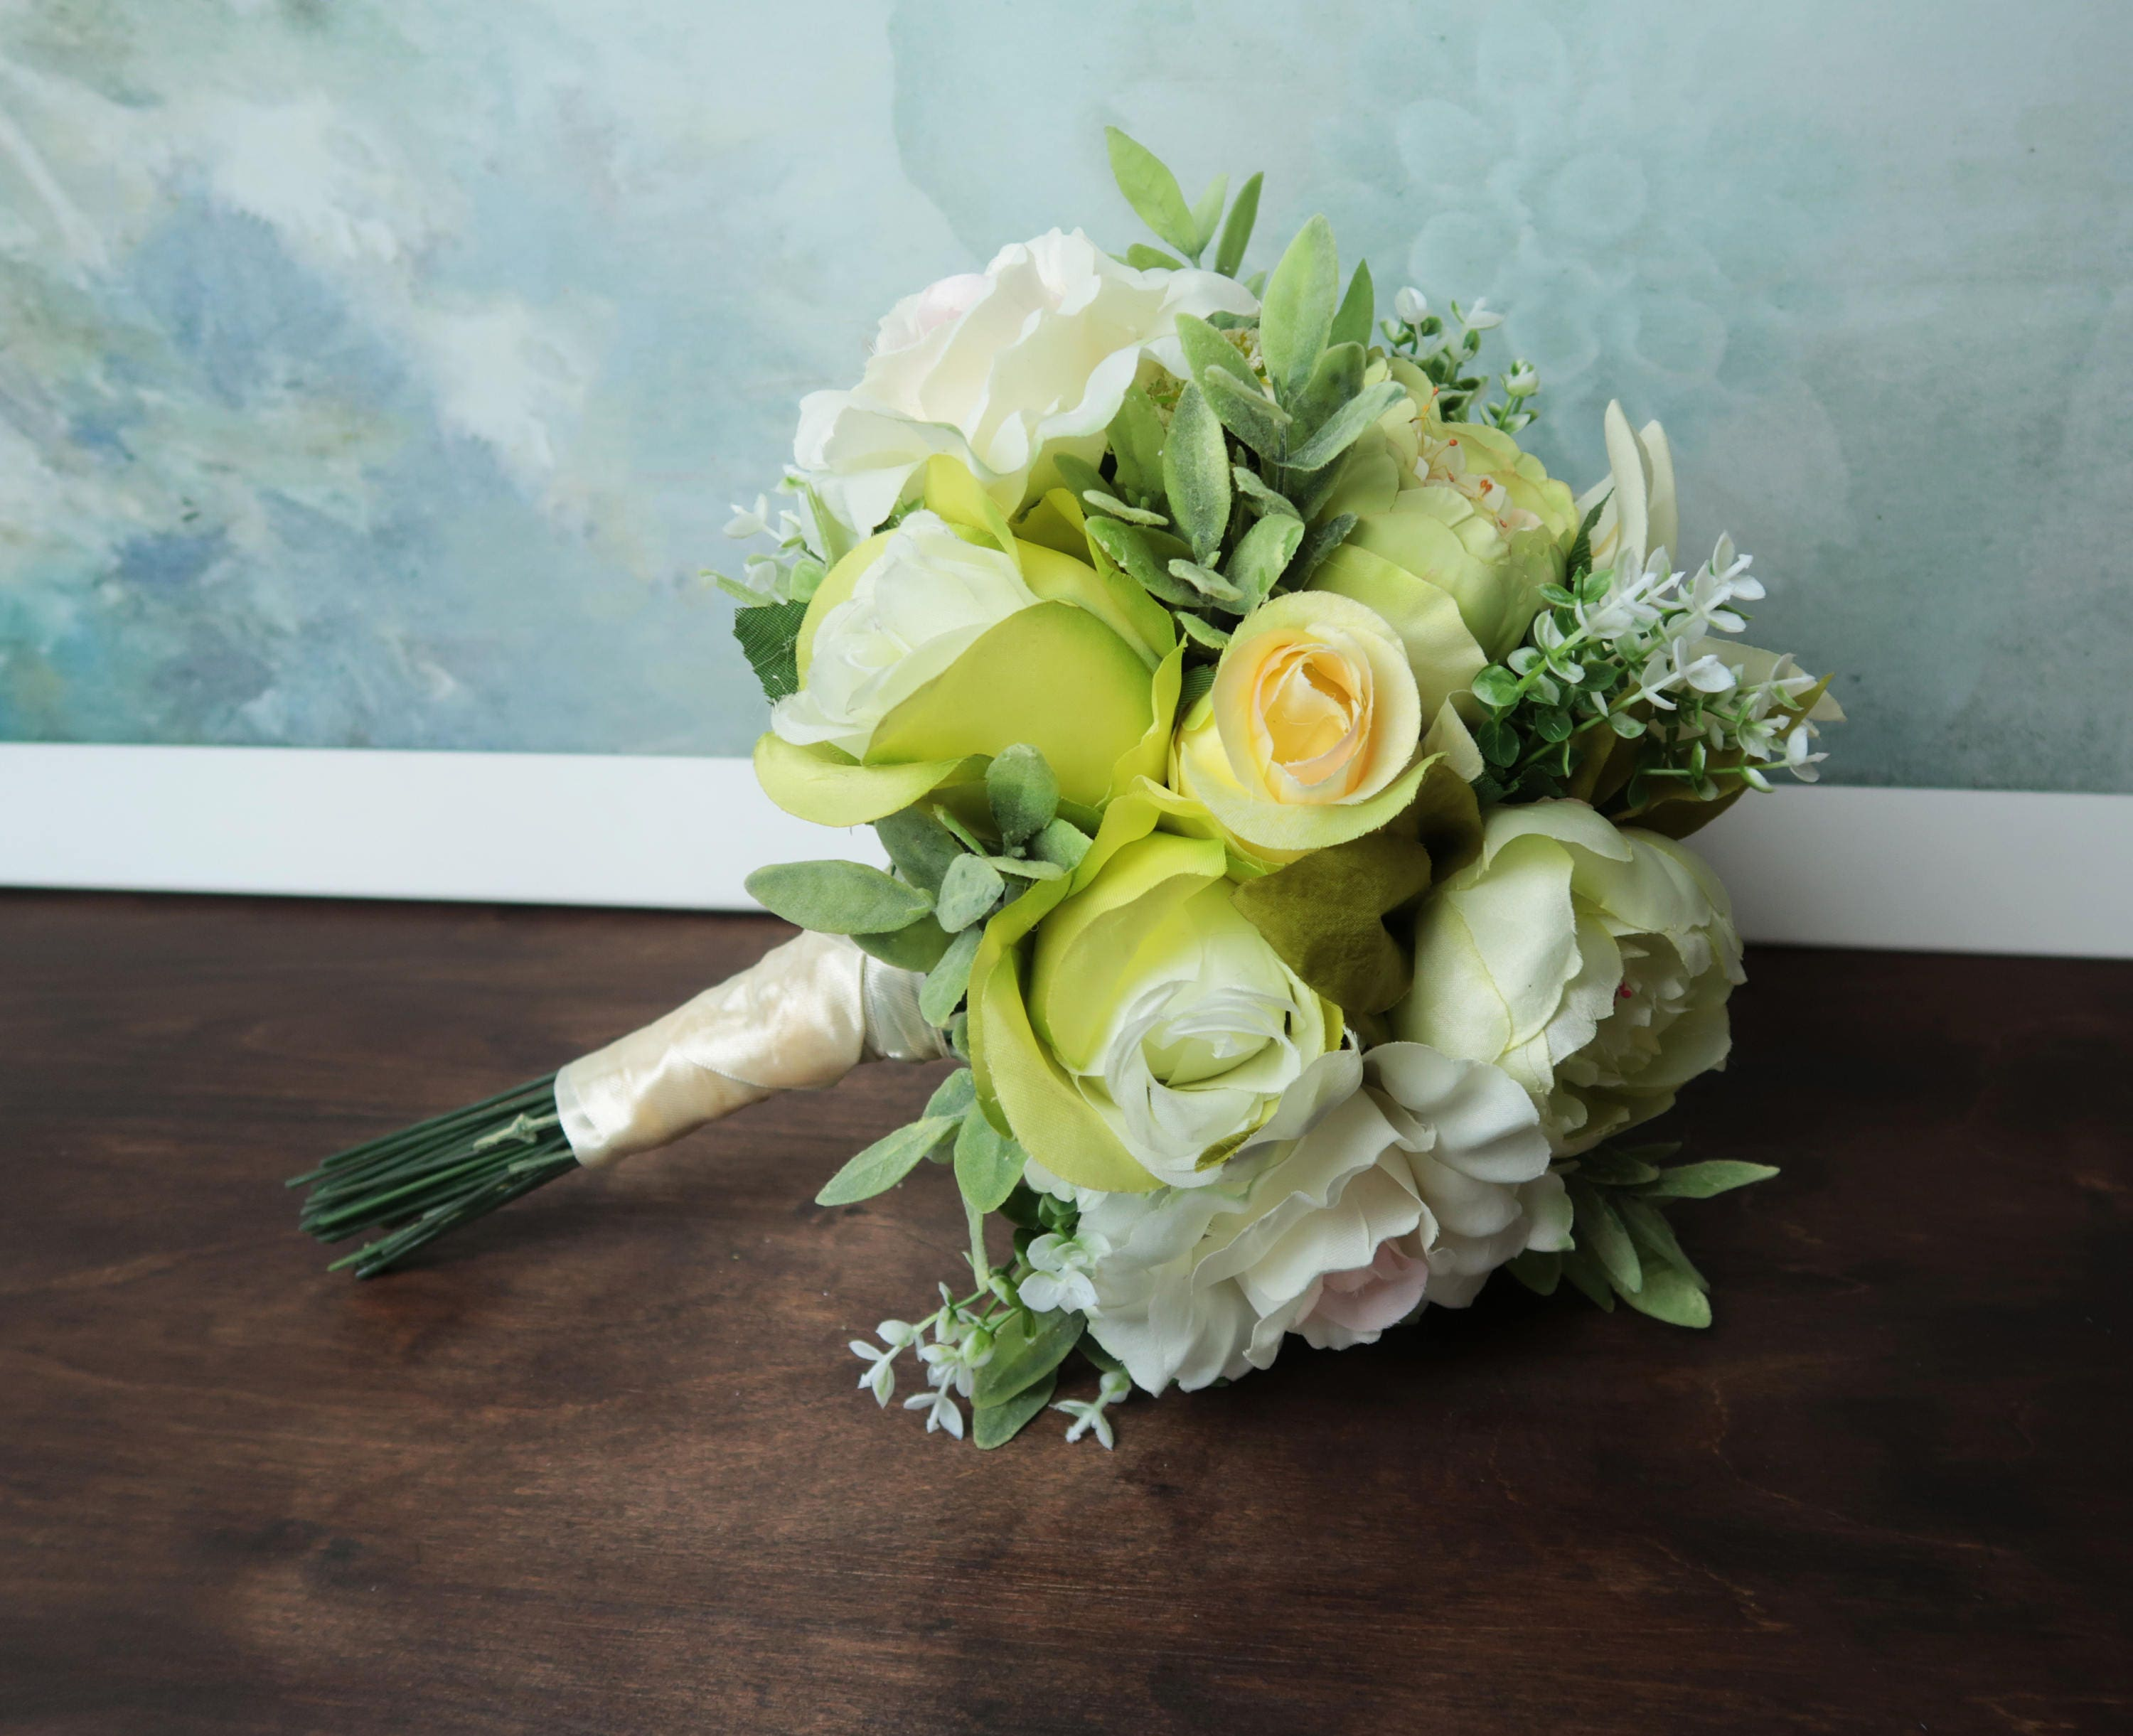 Green boho wedding bouquet silk flowers peonies roses lily greenery green boho wedding bouquet silk flowers peonies roses lily greenery realistic flower cheap ready to ship izmirmasajfo